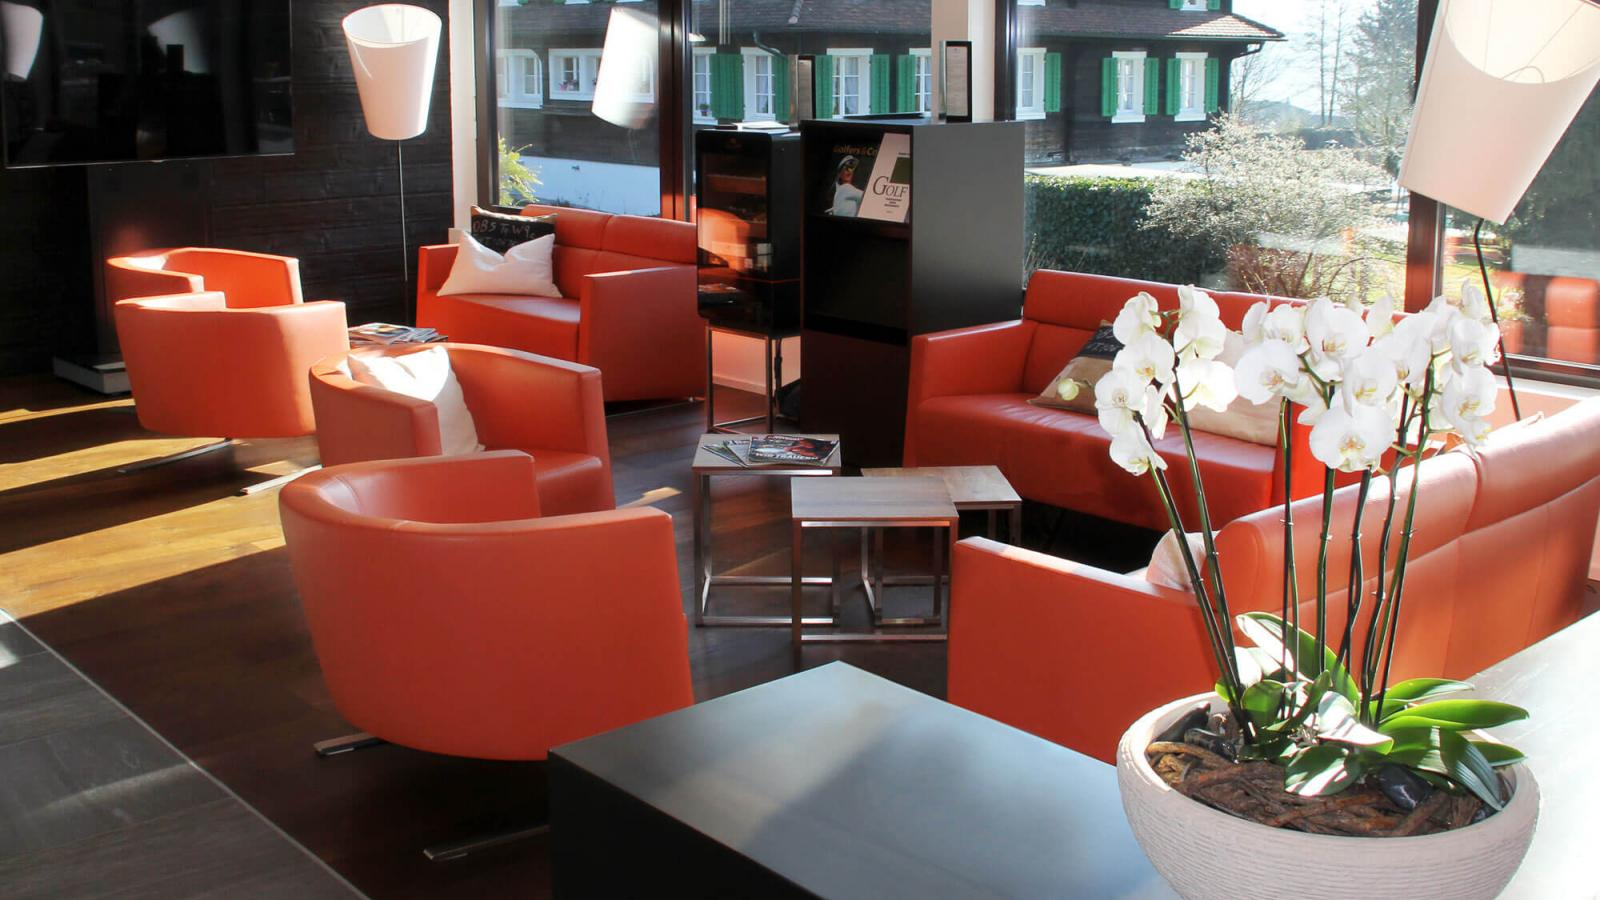 artanova switzerland siros sessel chair fauteuil exclusiv design moebel furniture meubles orange leder leather cuir